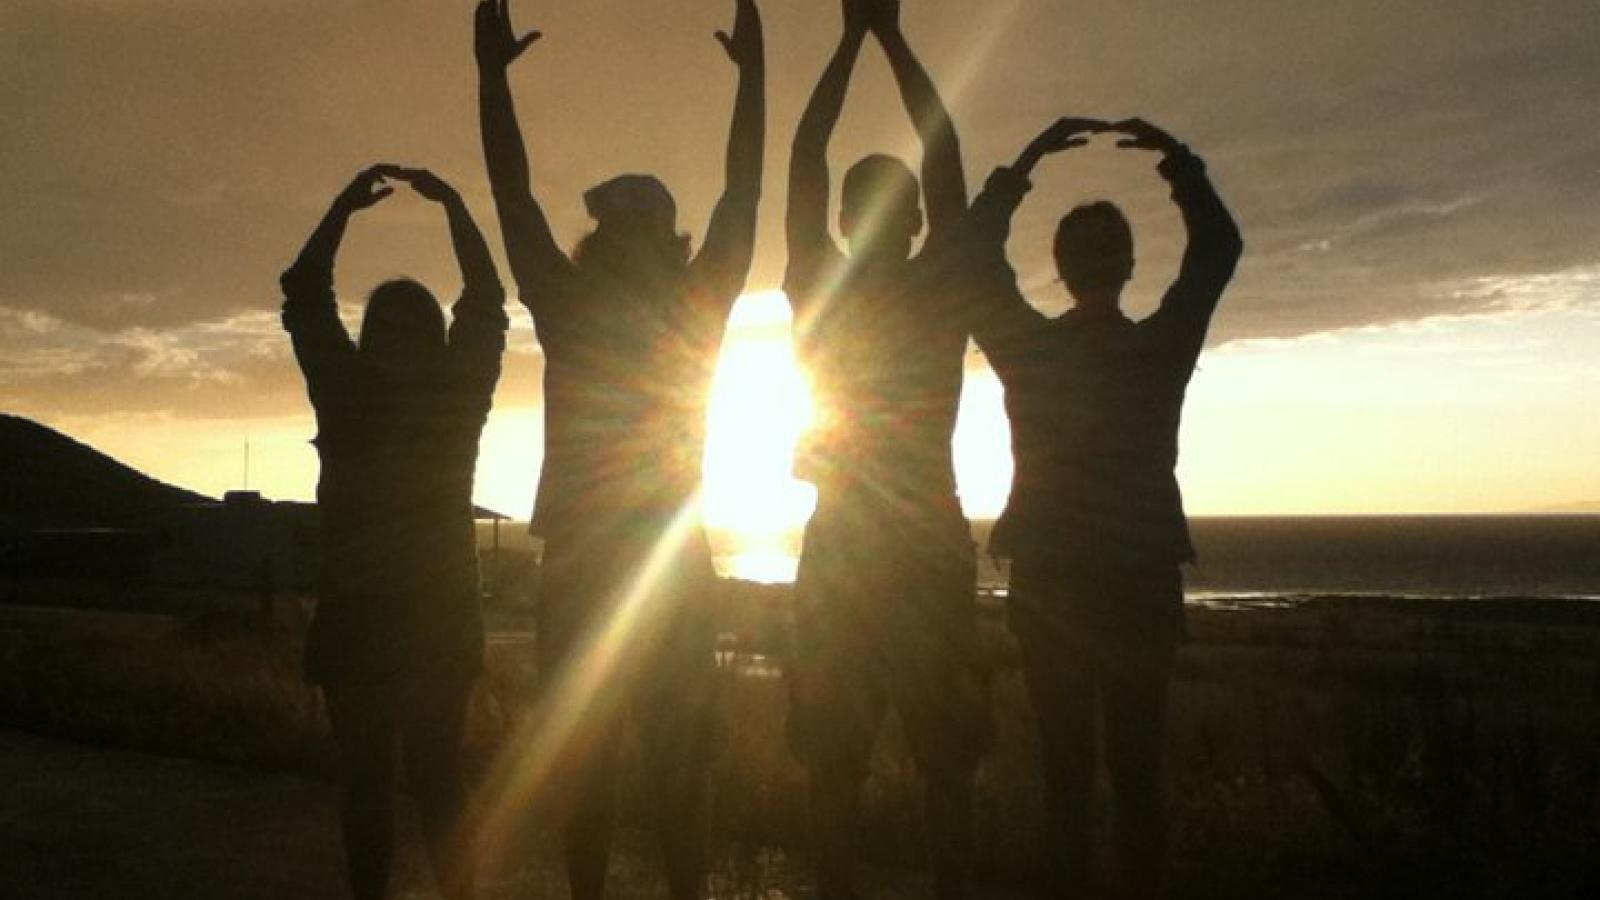 O-H-I-O at sunset on Field Camp